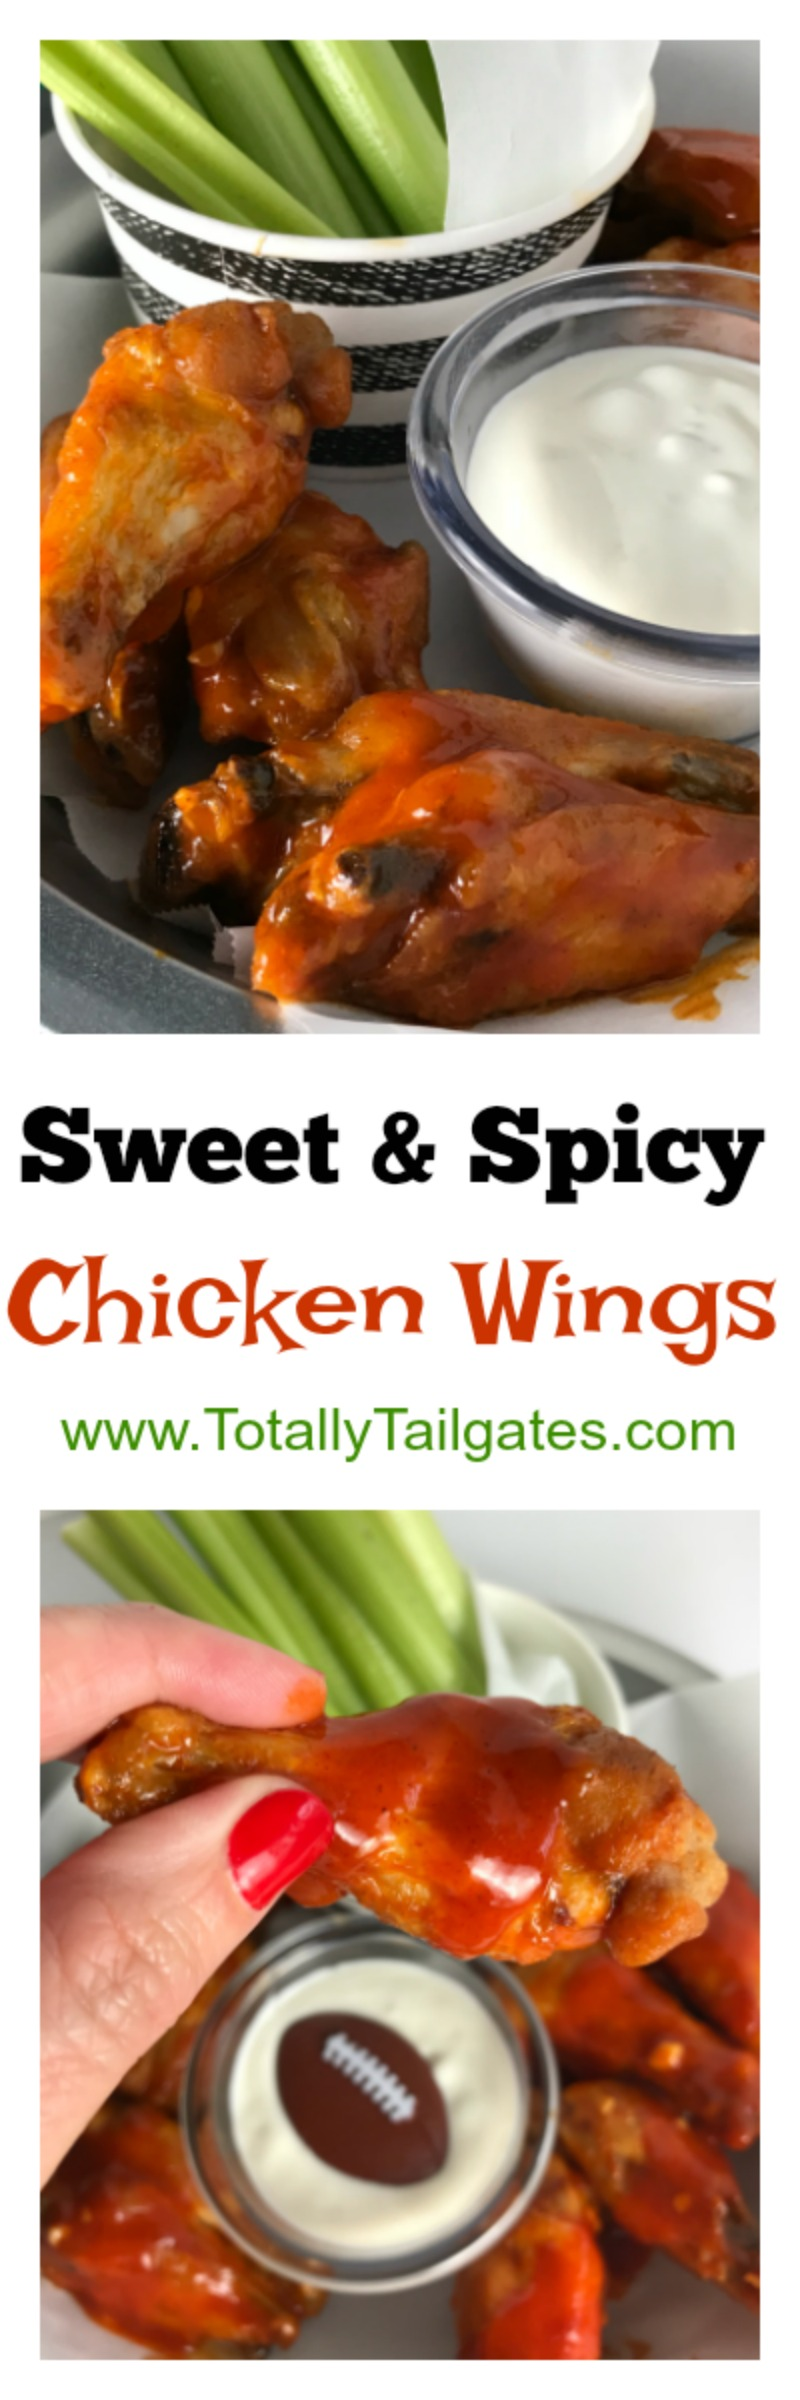 Sweet & Spicy Chicken Wings are always a hit on football game days!